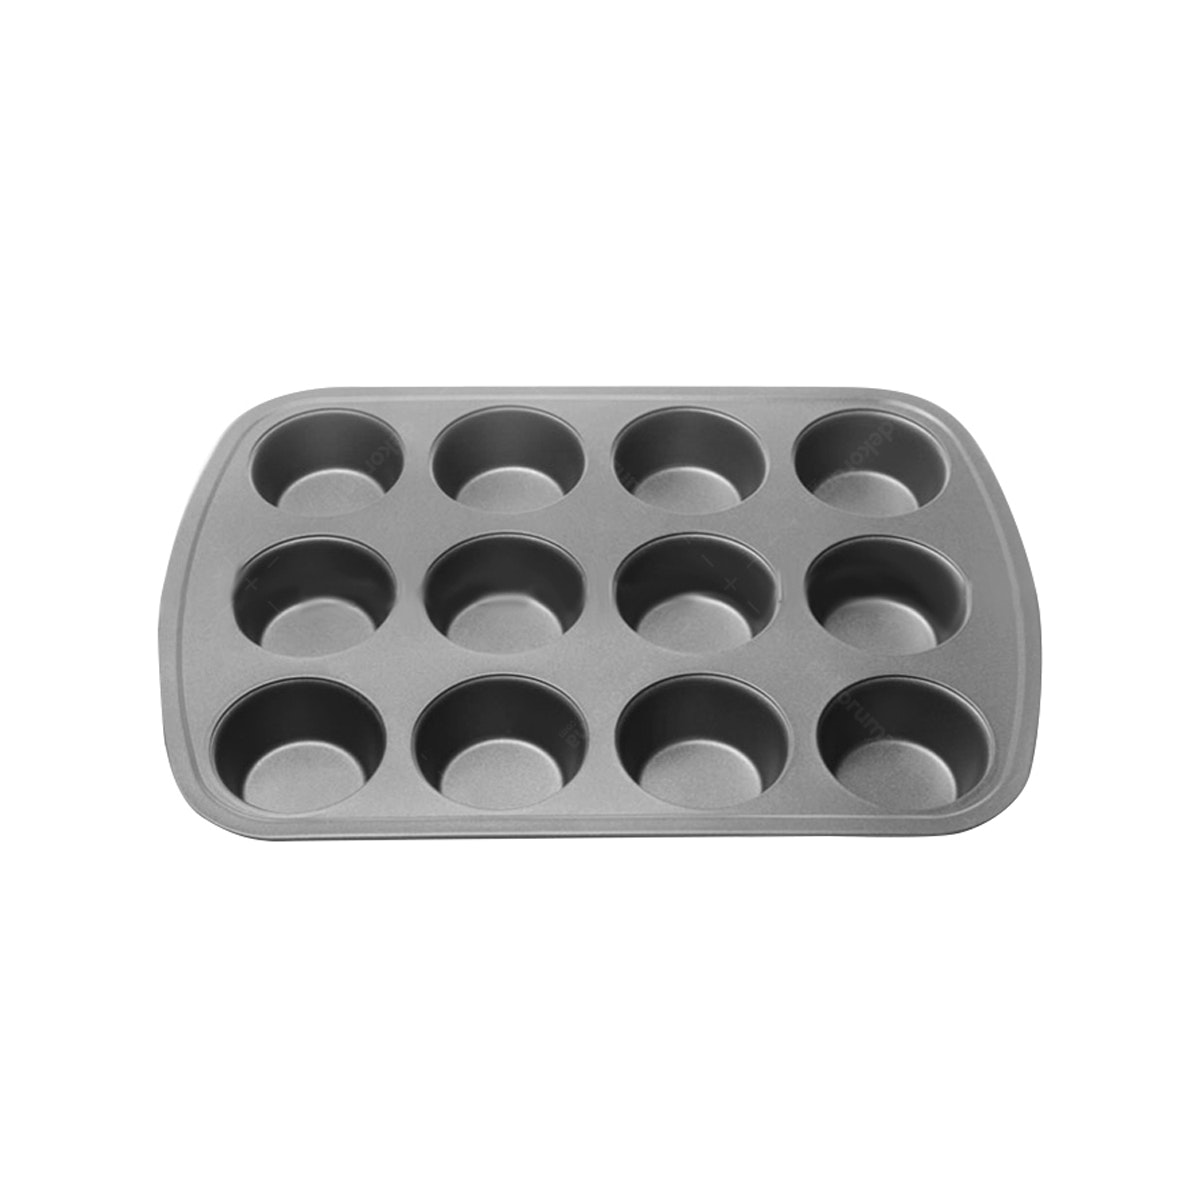 Cooks Habit 12 Cup Muffin Pan Regular